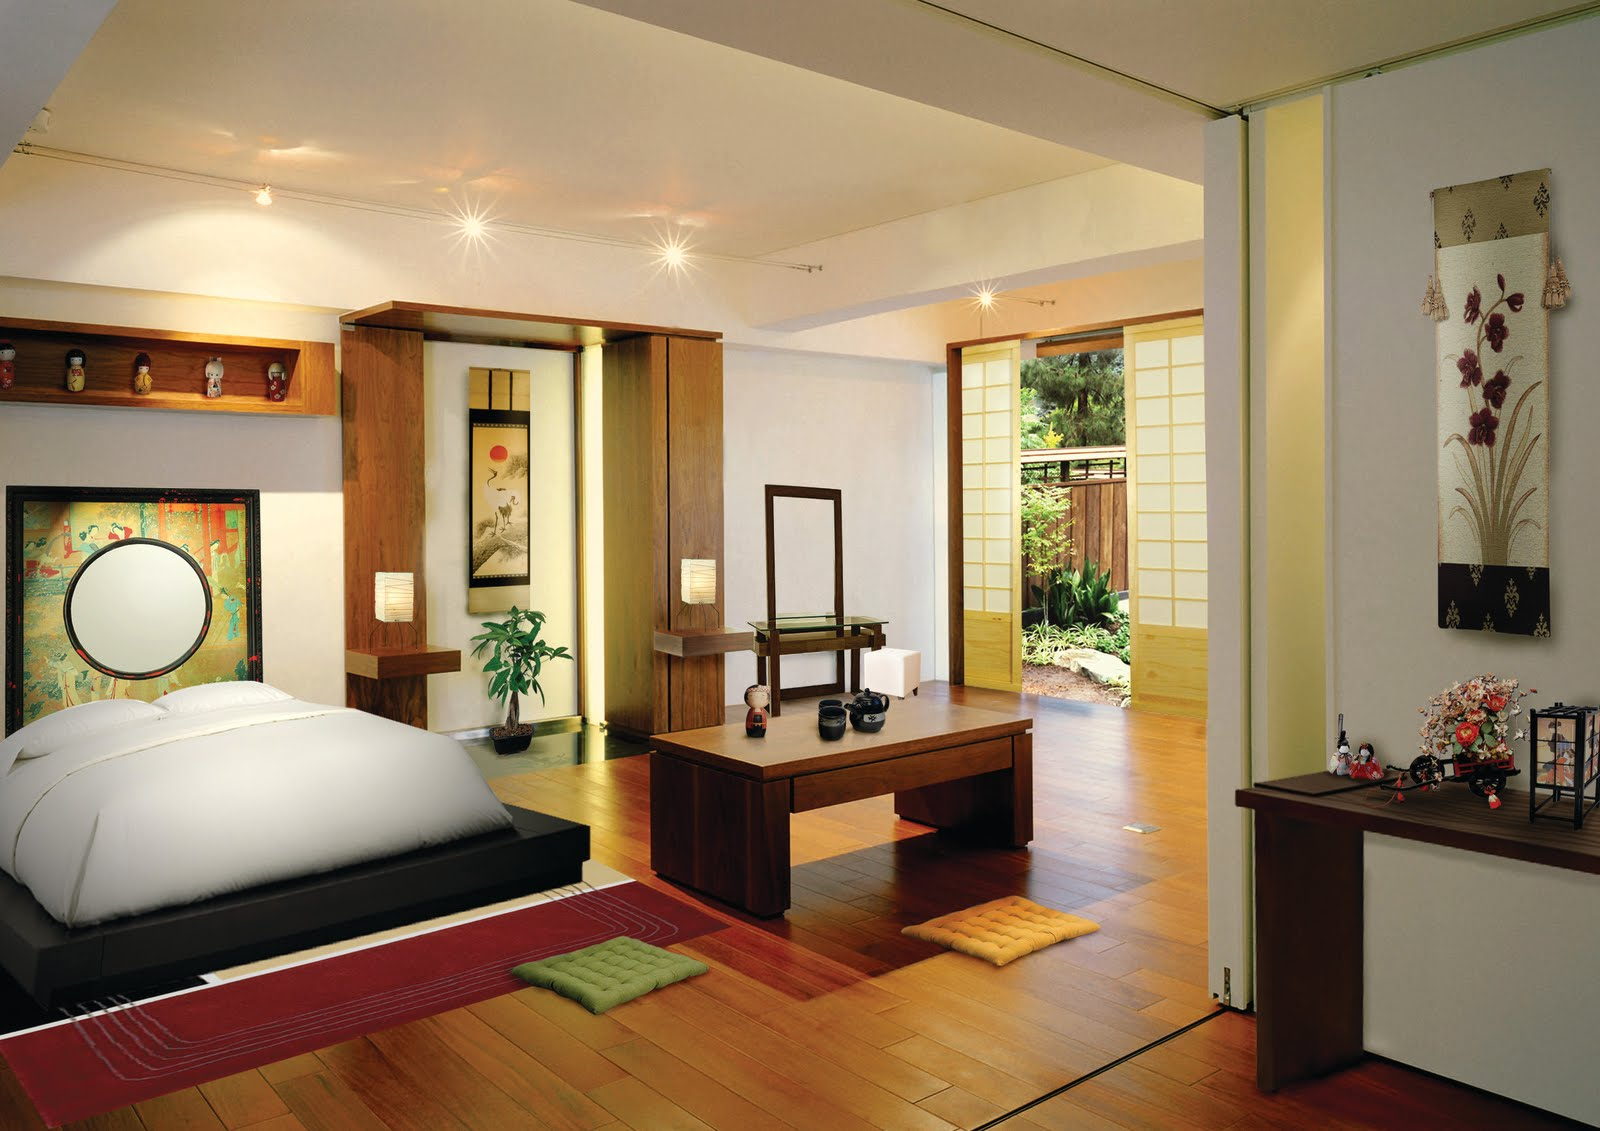 Melokumi japanese style bedroom design for Japanese bedroom designs pictures